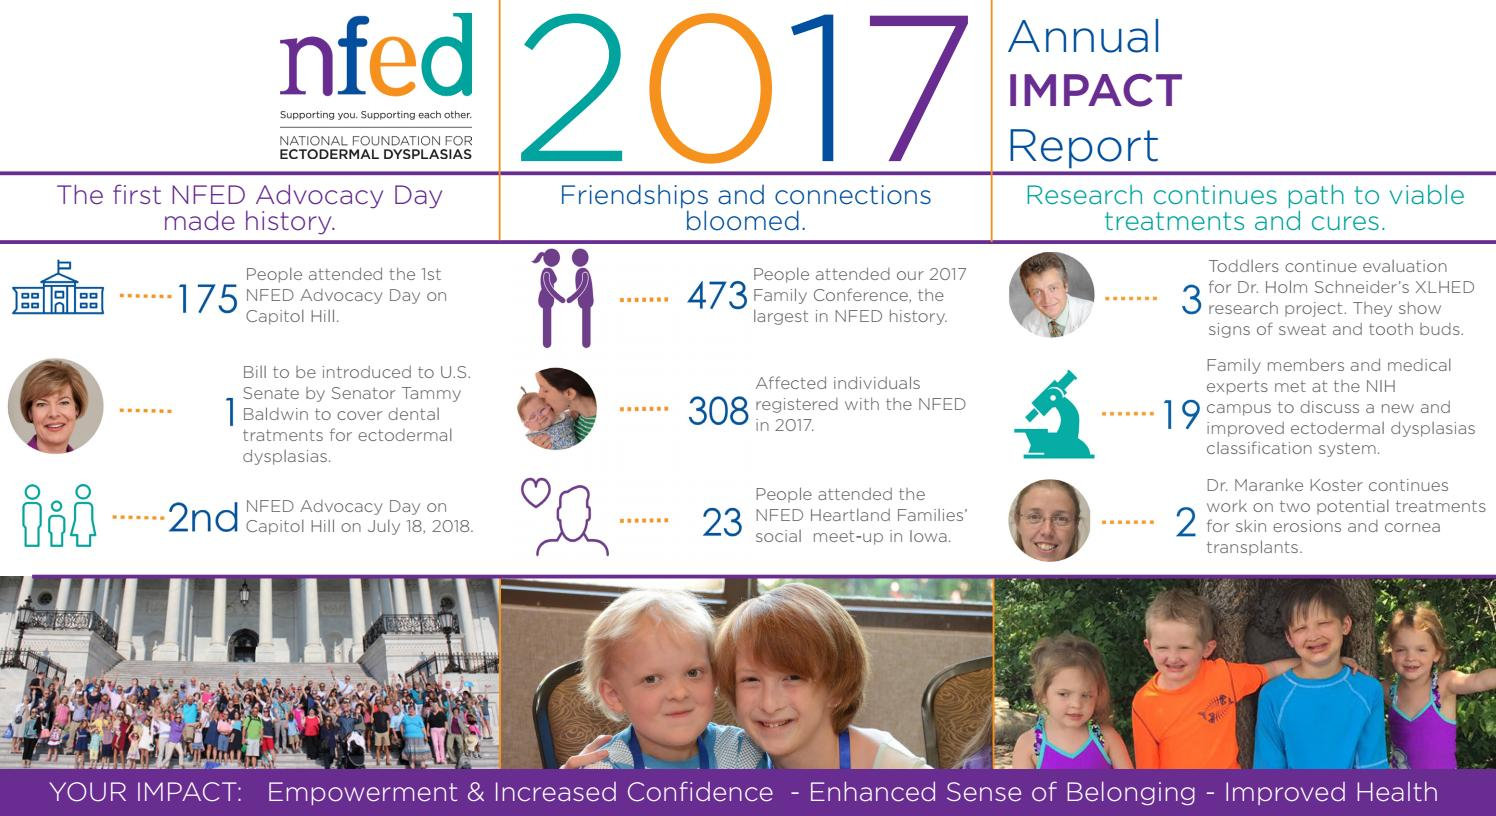 2017 NFED Annual IMPACT Report by National Foundation for